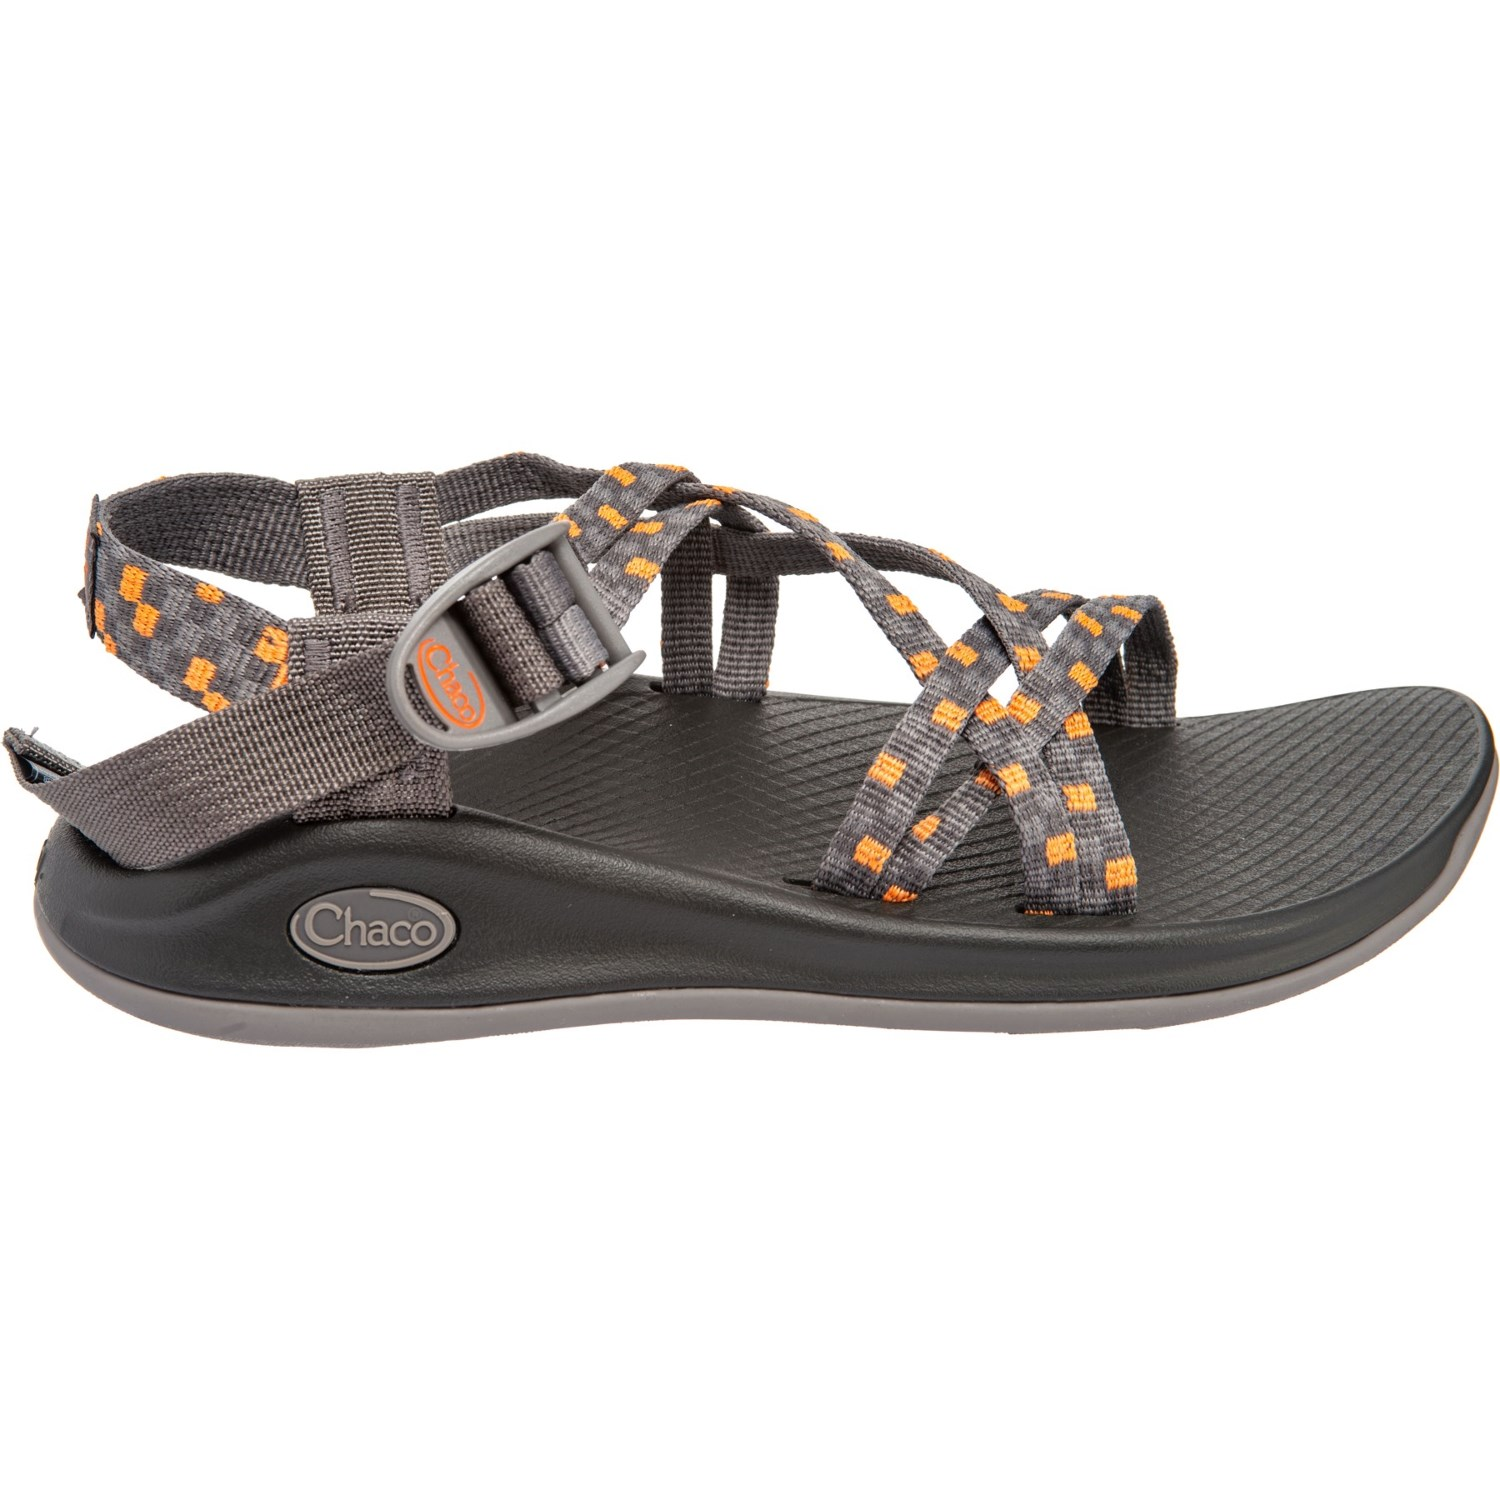 60b9c0f30eec Chaco Z Eddy X1 Sport Sandals (For Women) - Save 44%